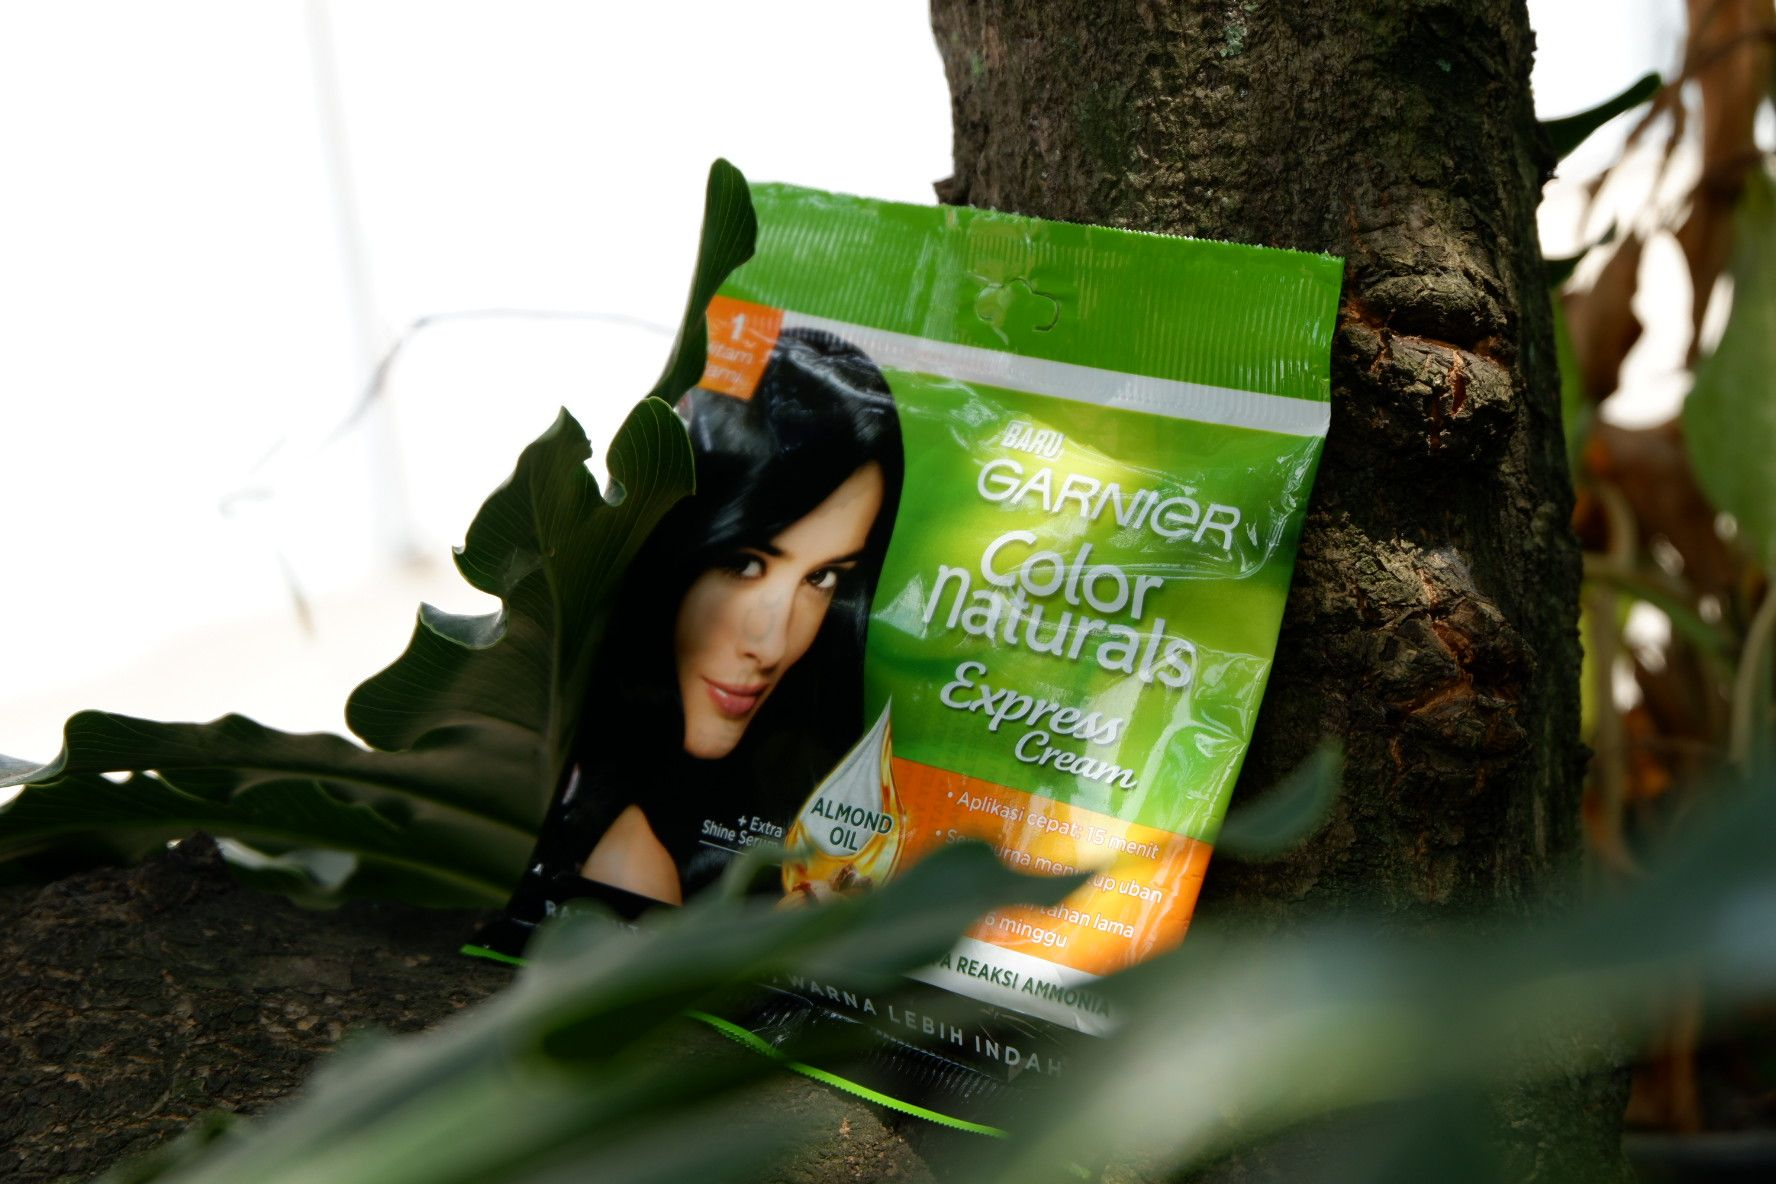 gambar review ke-2 untuk Garnier Color Naturals Express Cream